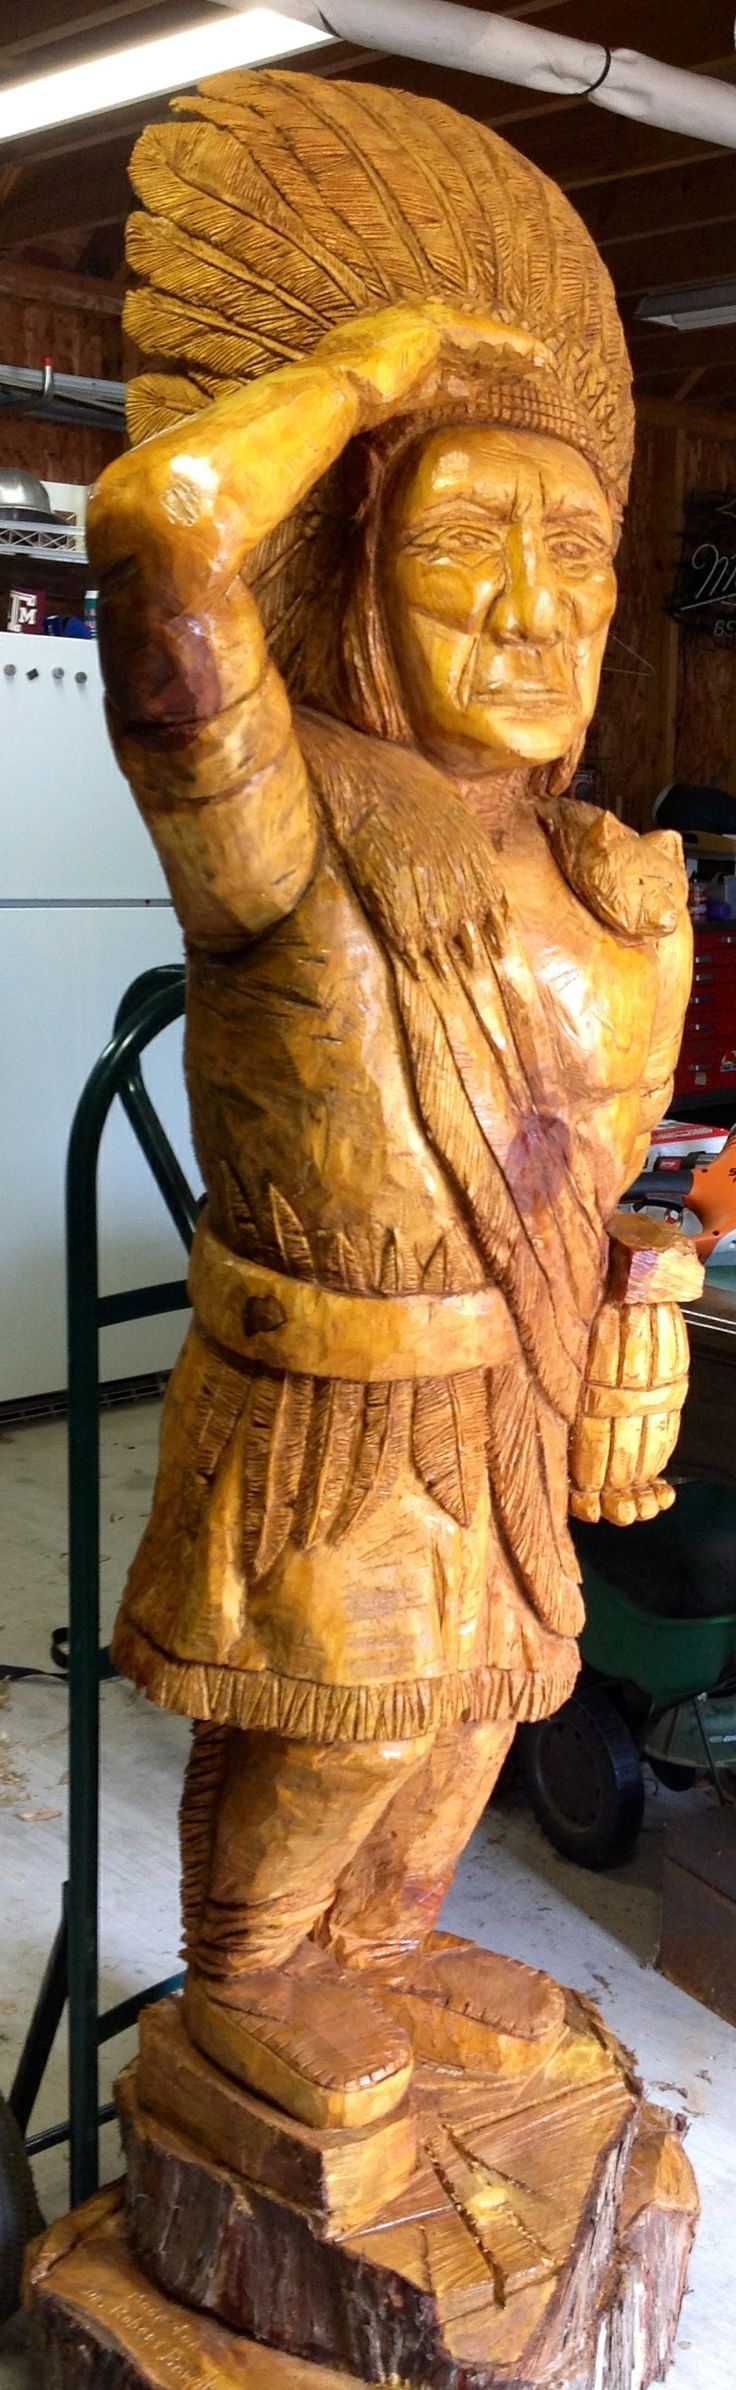 Best images about carving ideas on pinterest chainsaw